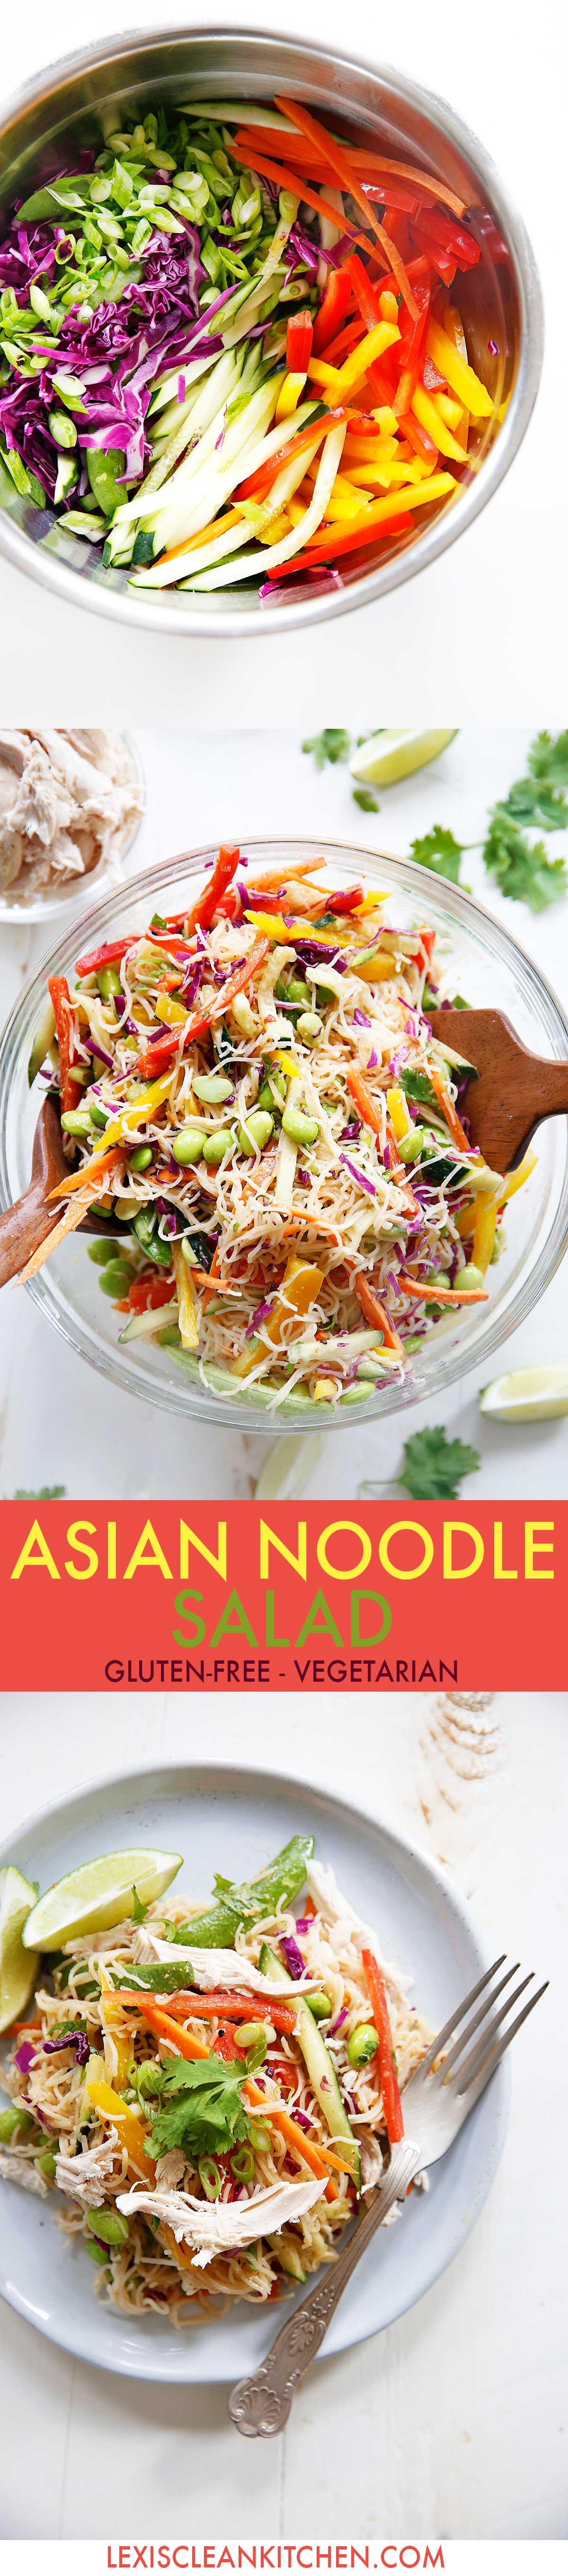 Gluten Free Cold Asian Noodle Salad {Gluten-free, no added sugar, 30 minutes or less, vegetarian option}   Lexi's Clean Kitchen